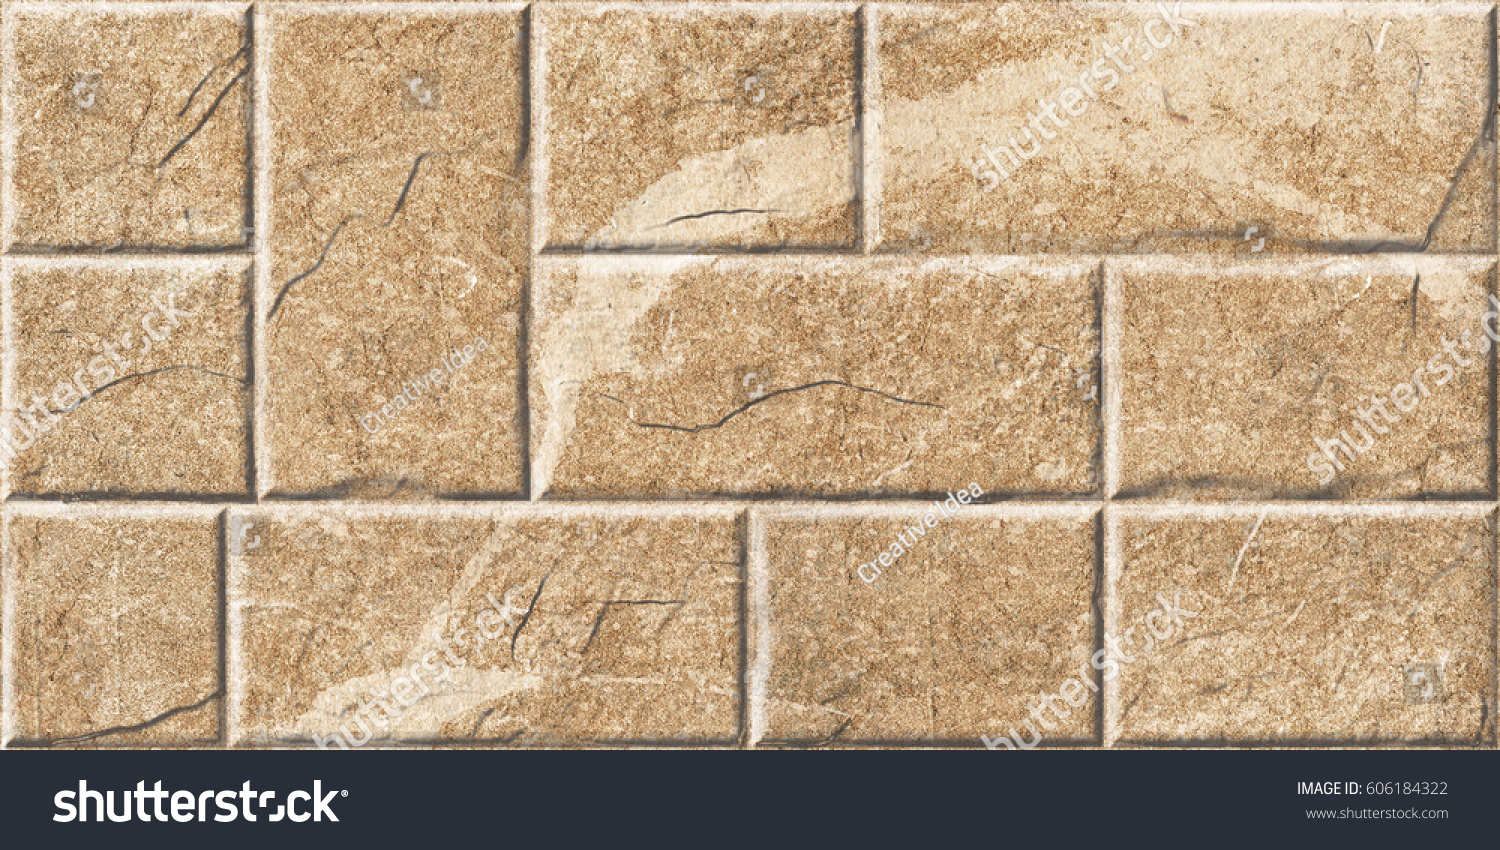 Abstract Home Decorative Wall Elevation Tiles Stock Illustration ...